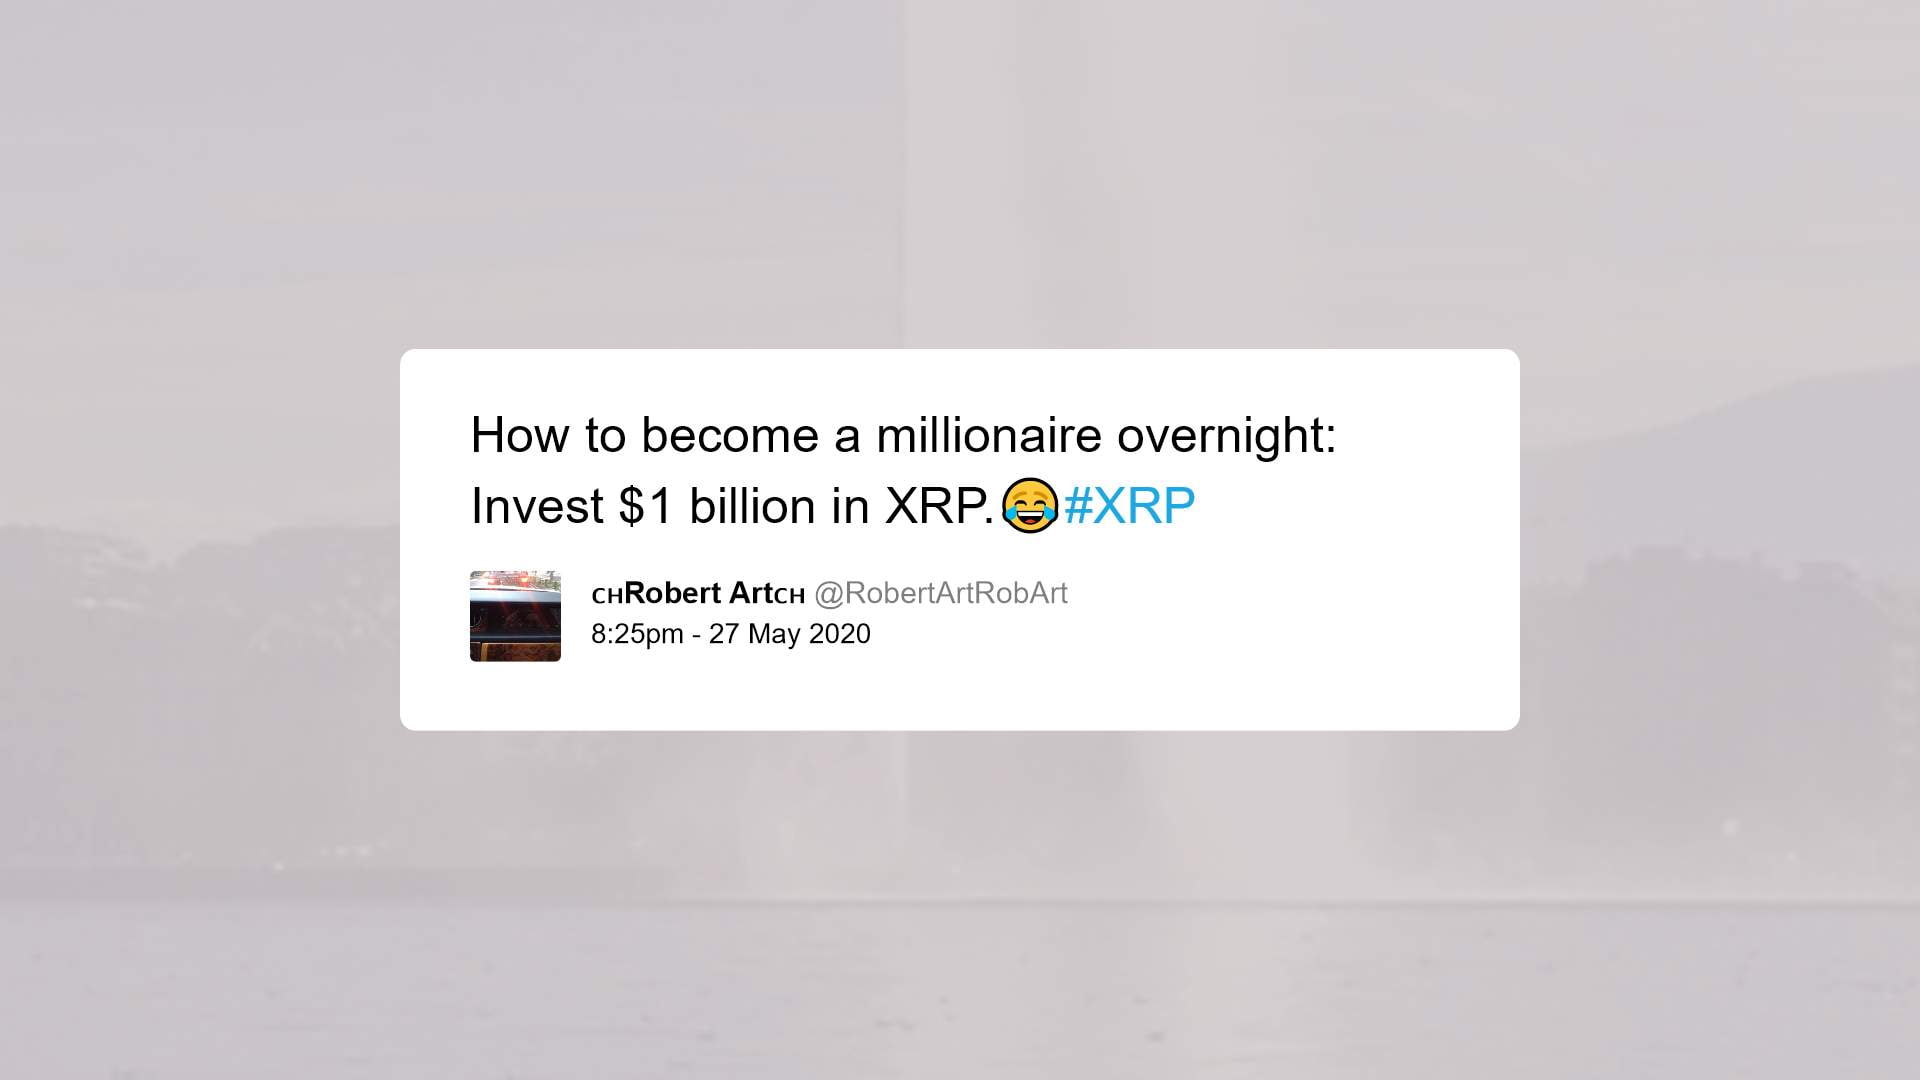 Tweet from pro-Ripple XRP influencer poking fun at the stale price action